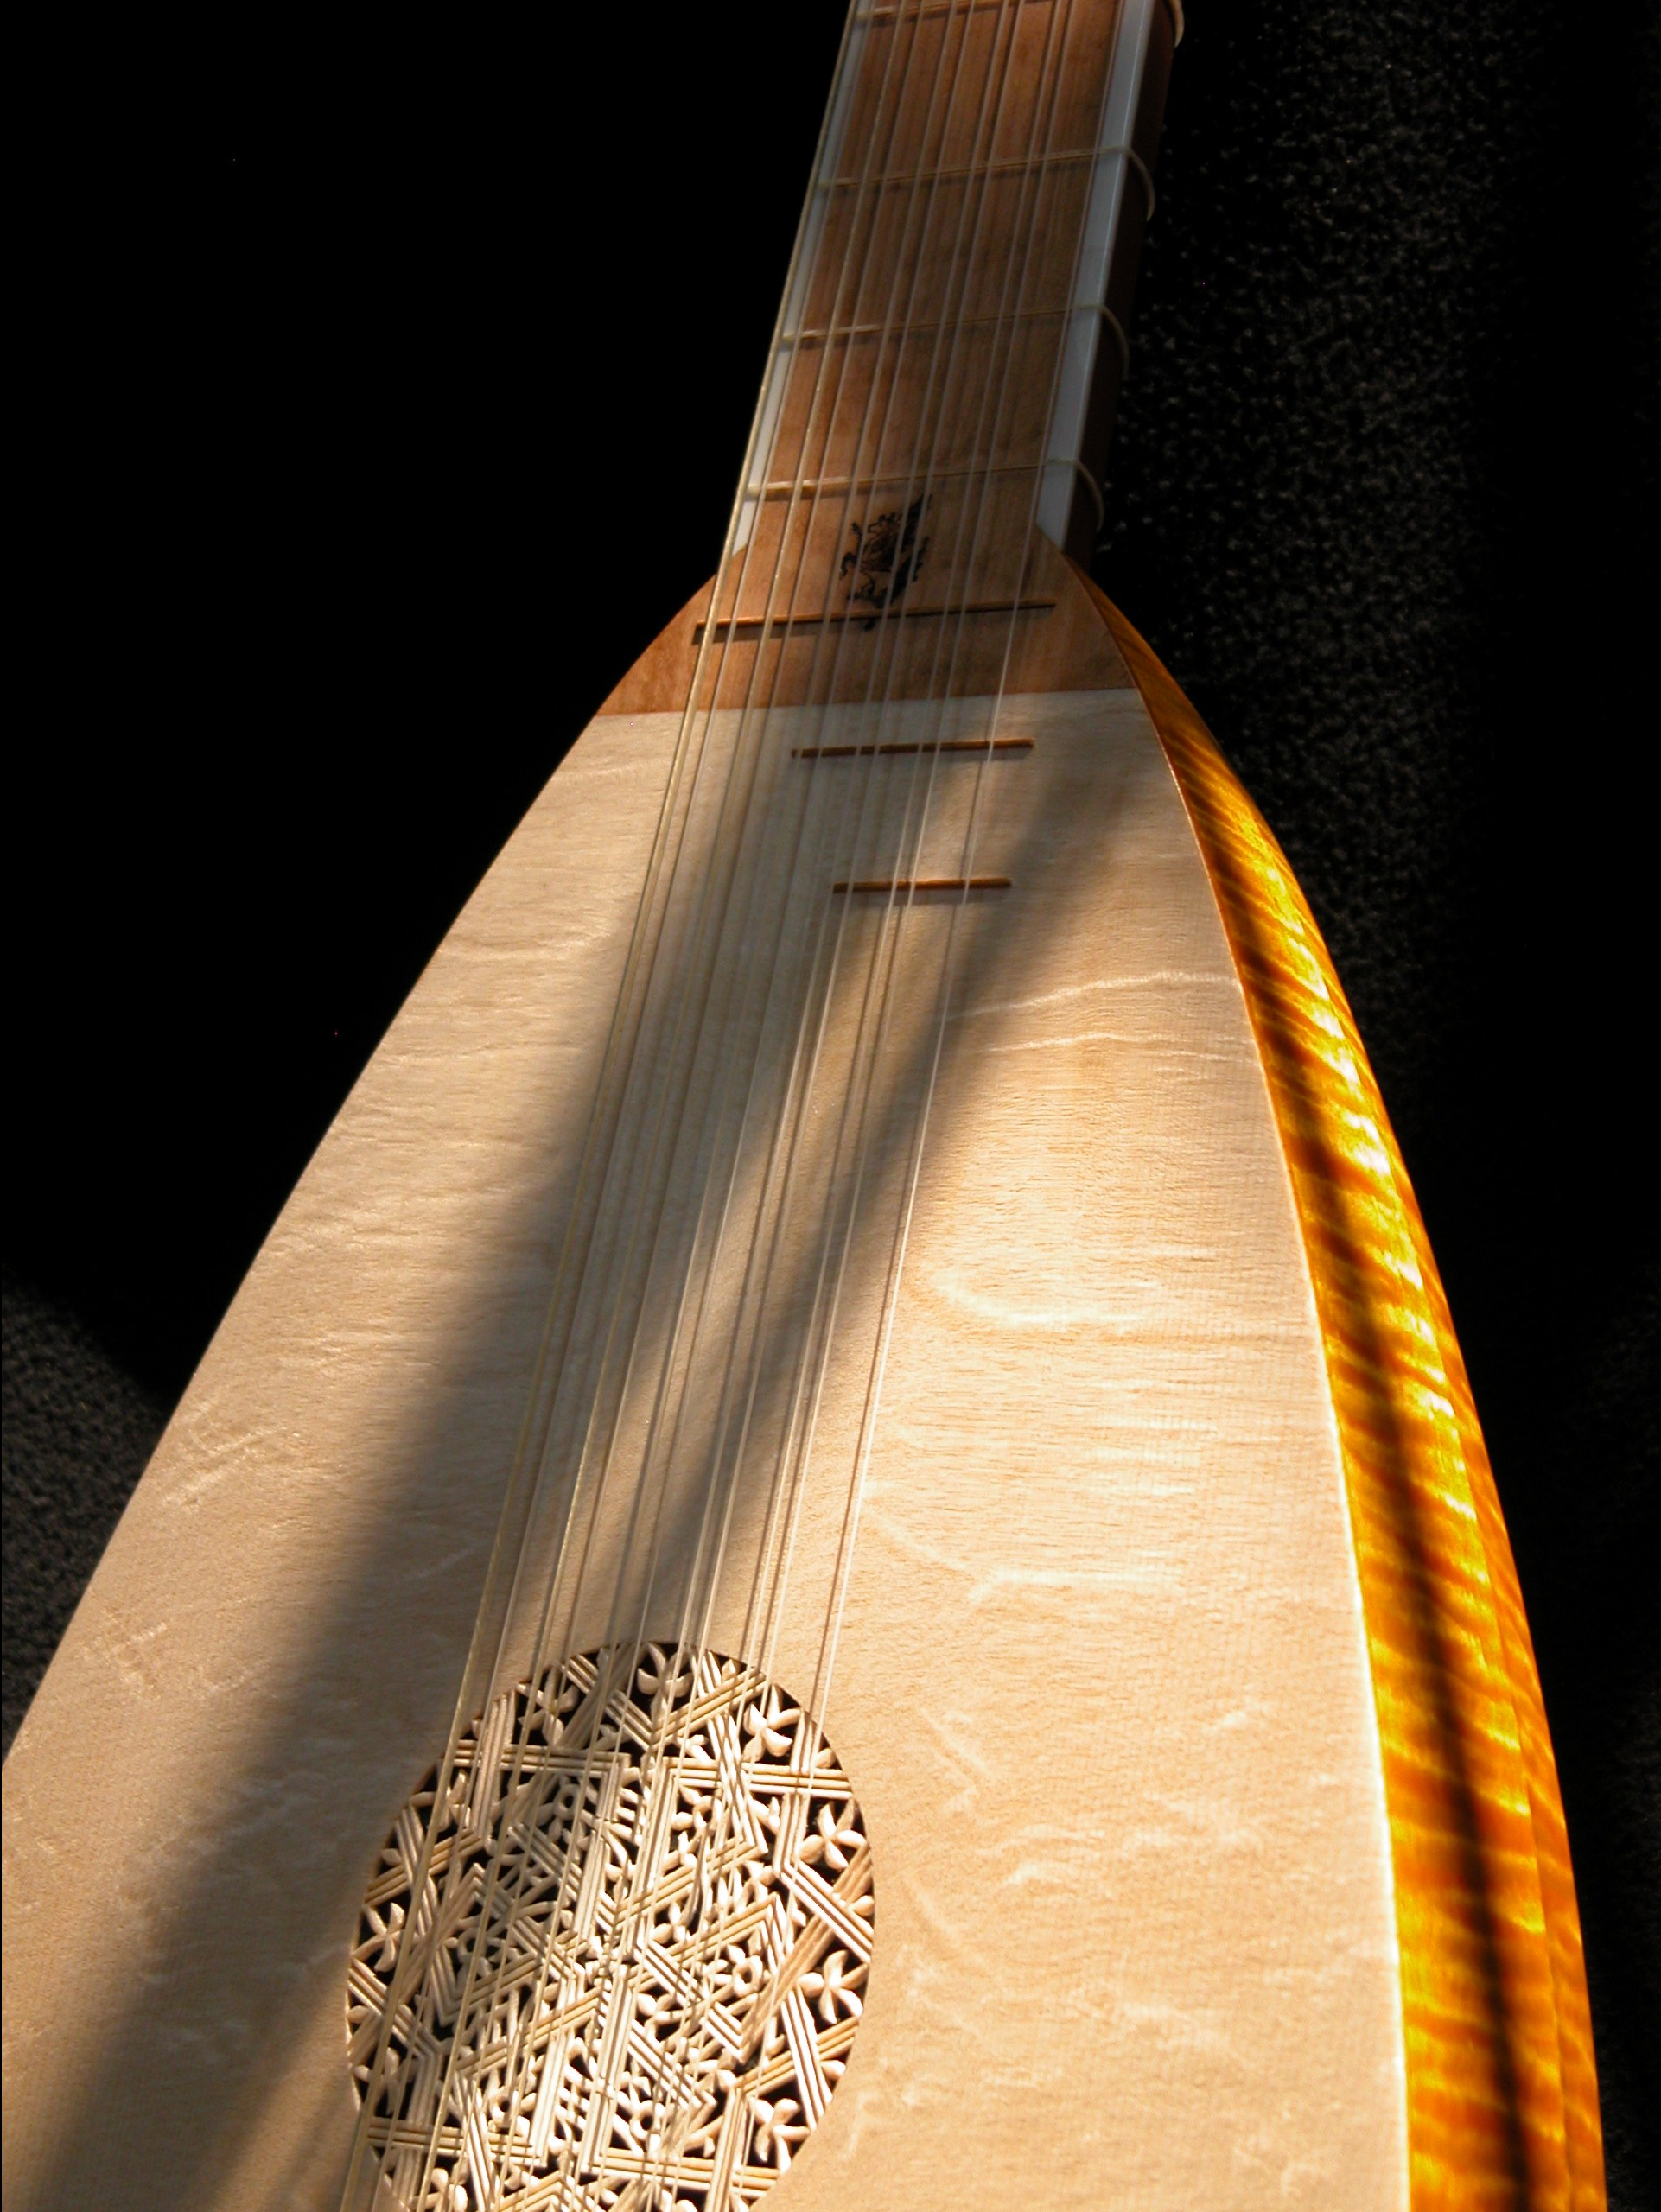 Bass lute modeled after Hans Frei, c. 1520, by Sandi Harris & Stephen Barber